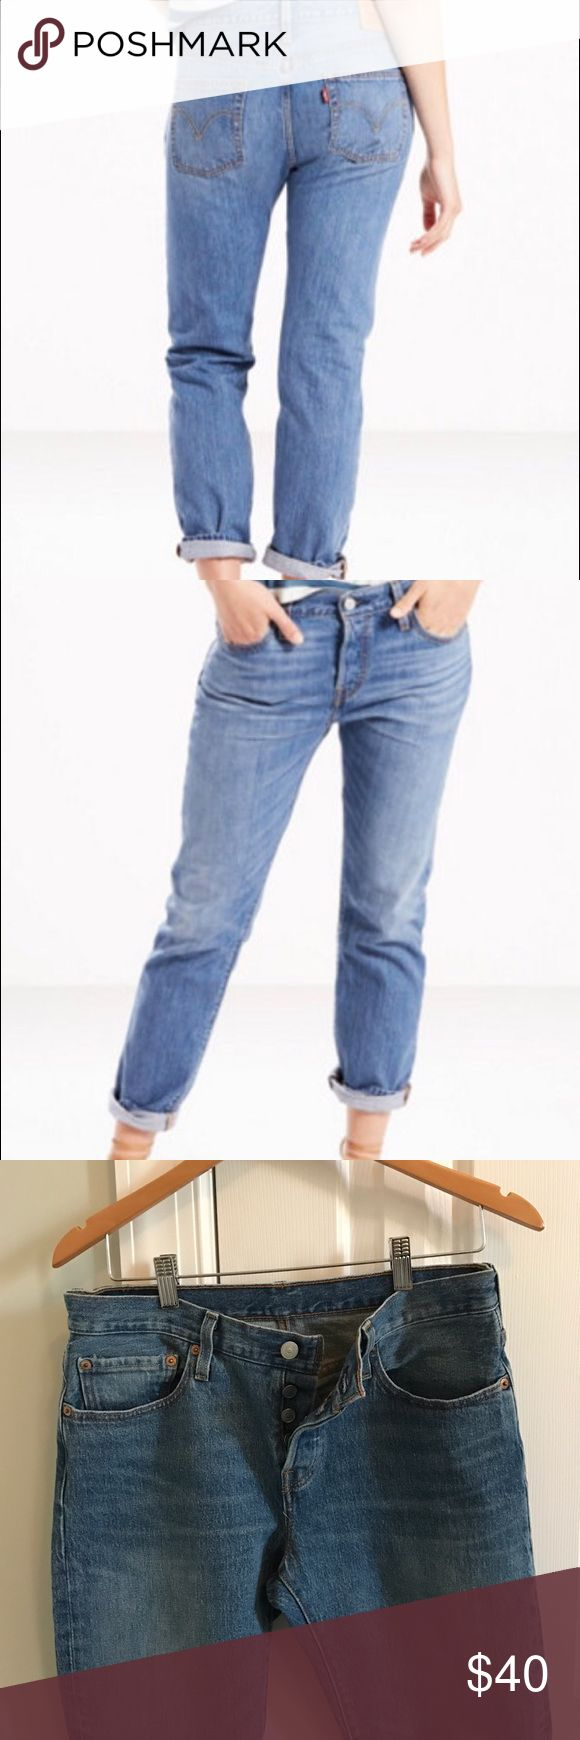 Authentic Levi's 501 Womens Button Fly Jeans LNWOT, Authentic Womens Levi's 501 Jeans, Size W26 L32 (I'm a 2/4 and these fit great), cute with rolled hem, purchased these directly from Levi's, only worn once. Levi's Jeans